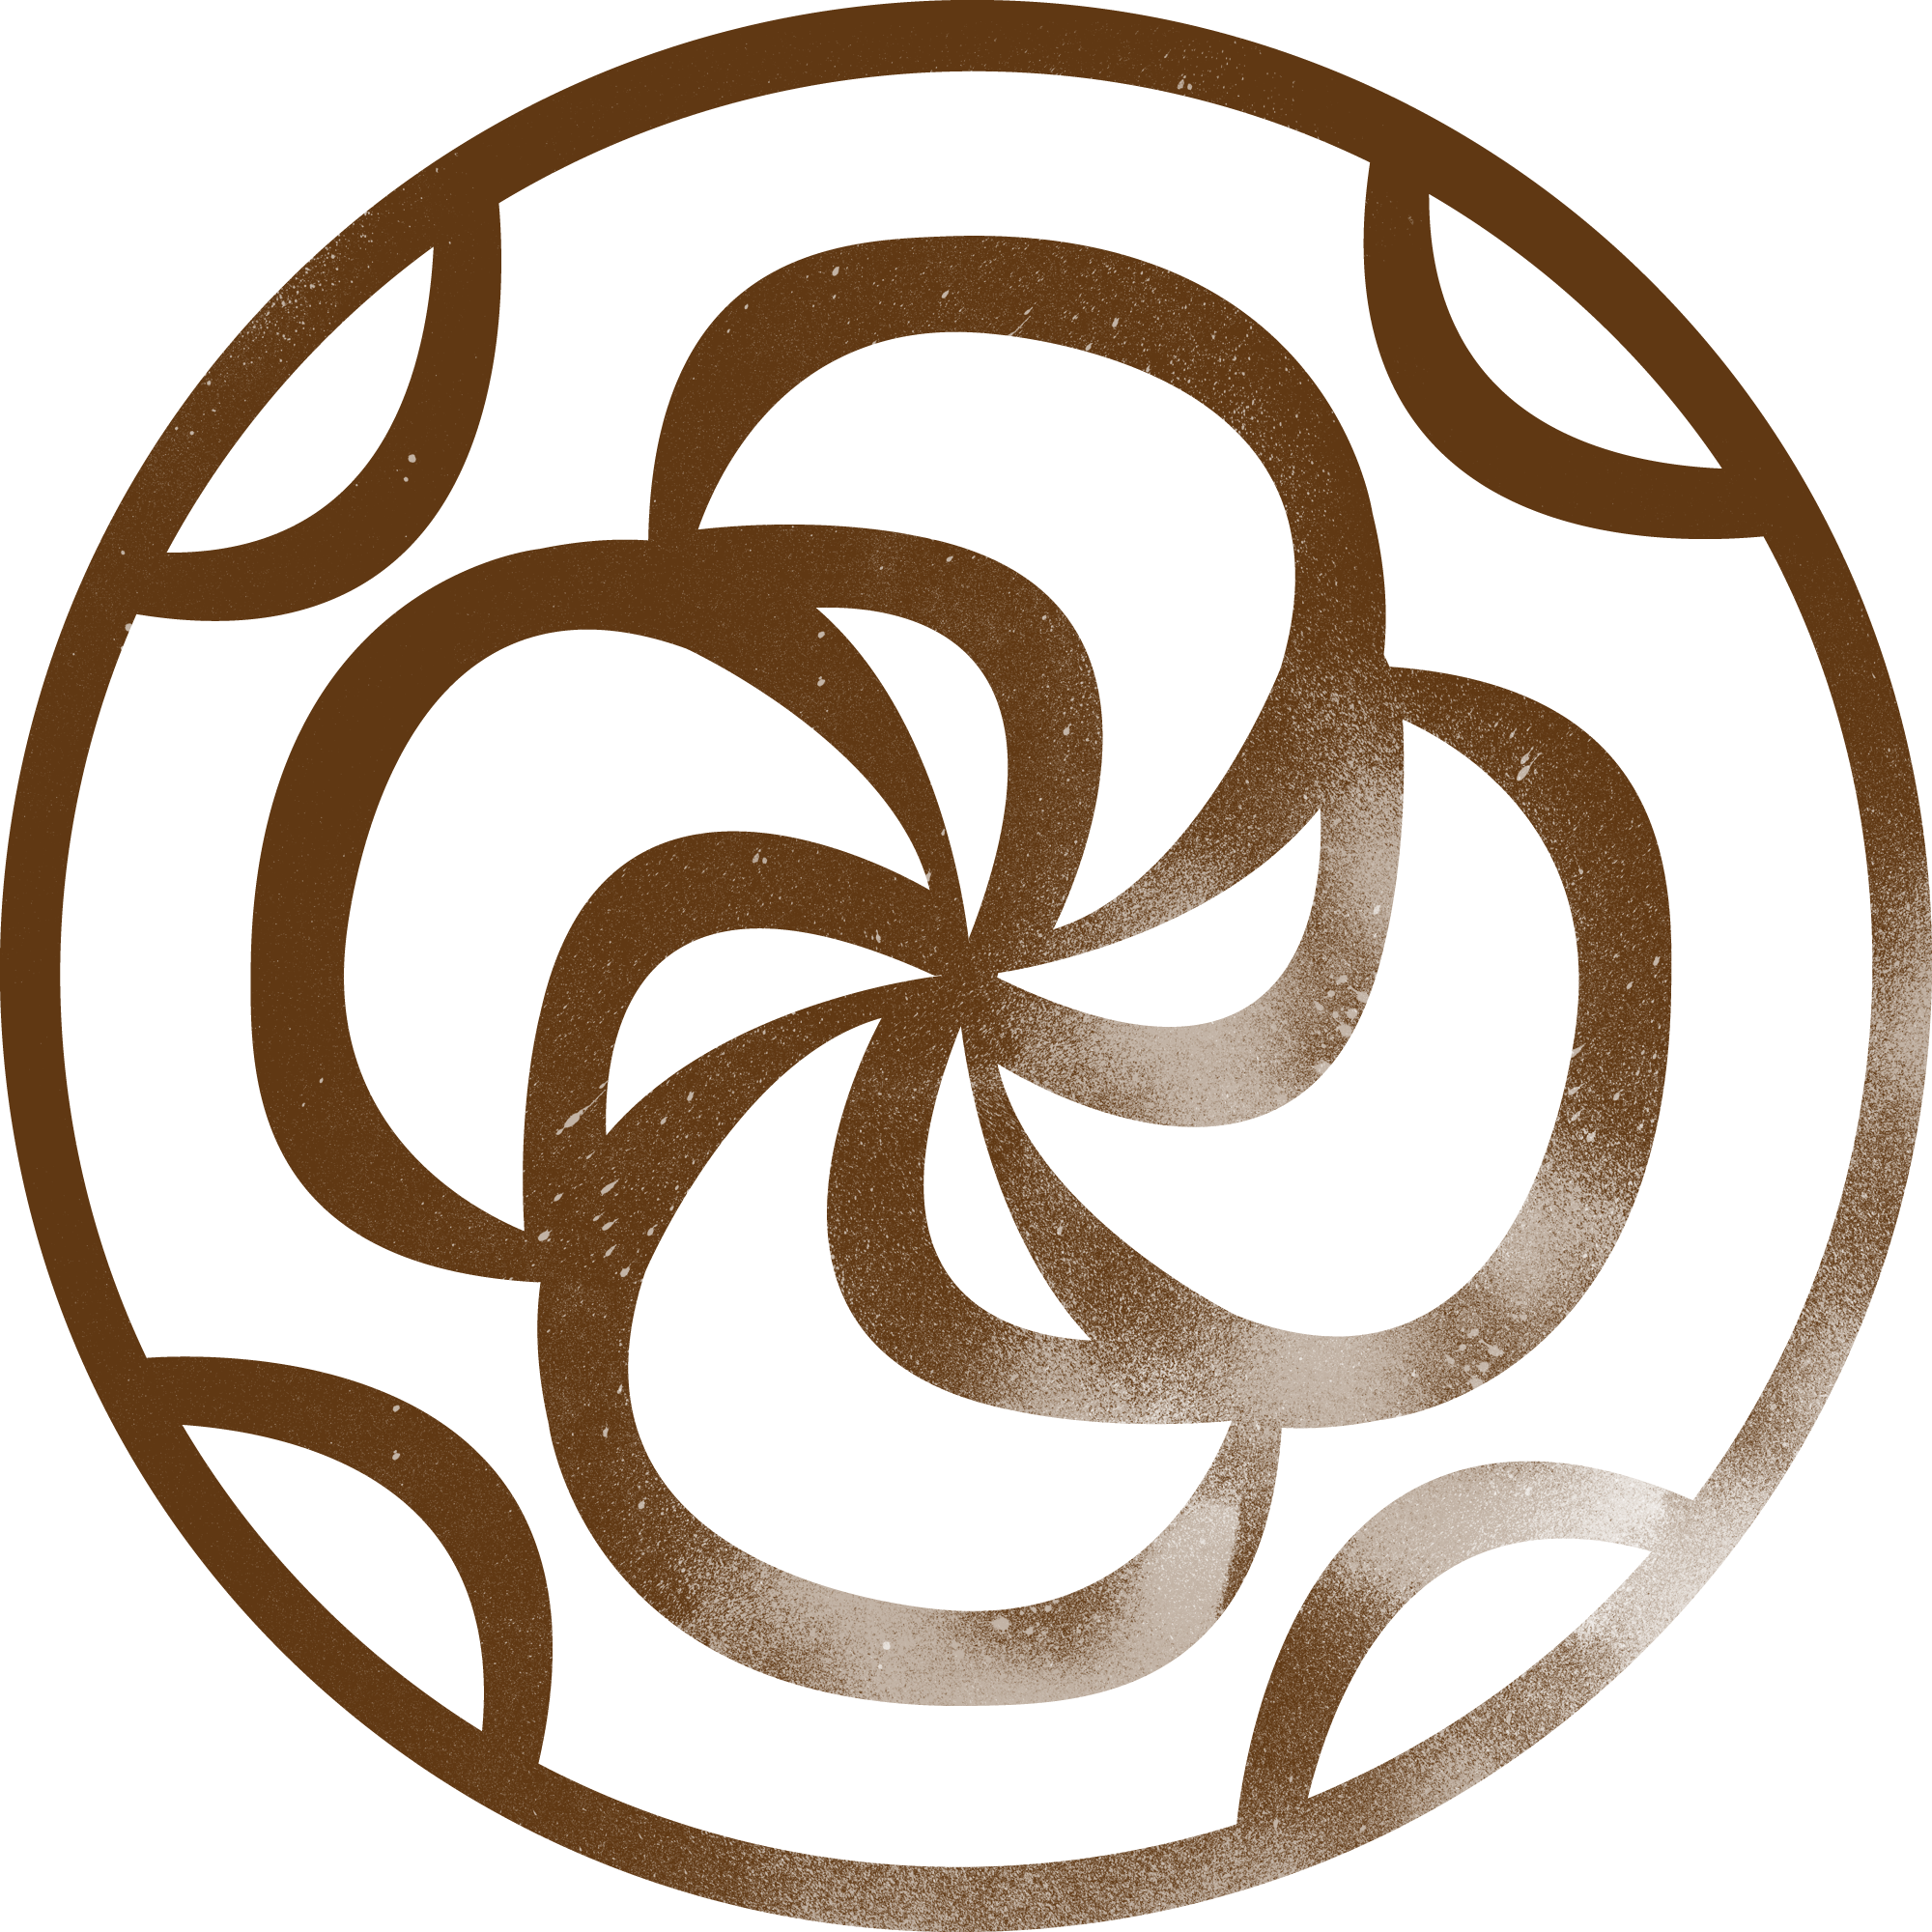 Spells and rituals the secret circle wiki fandom powered by wikia cassielgo biocorpaavc Images